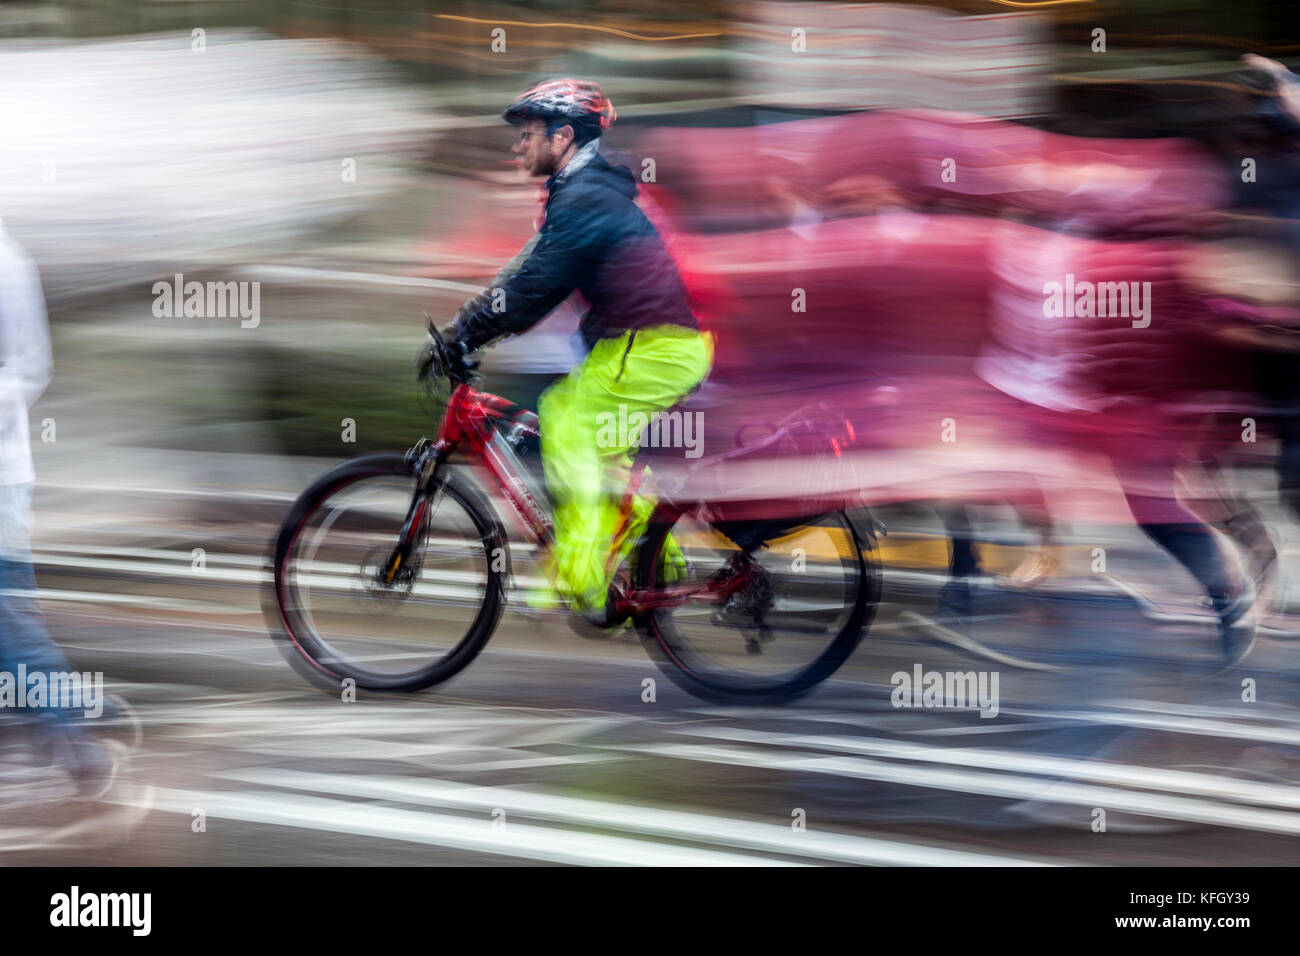 WA14183-00...WASHINGTON - Bicycle ridder on a wet day in down town Seattle. (No MR) - Stock Image